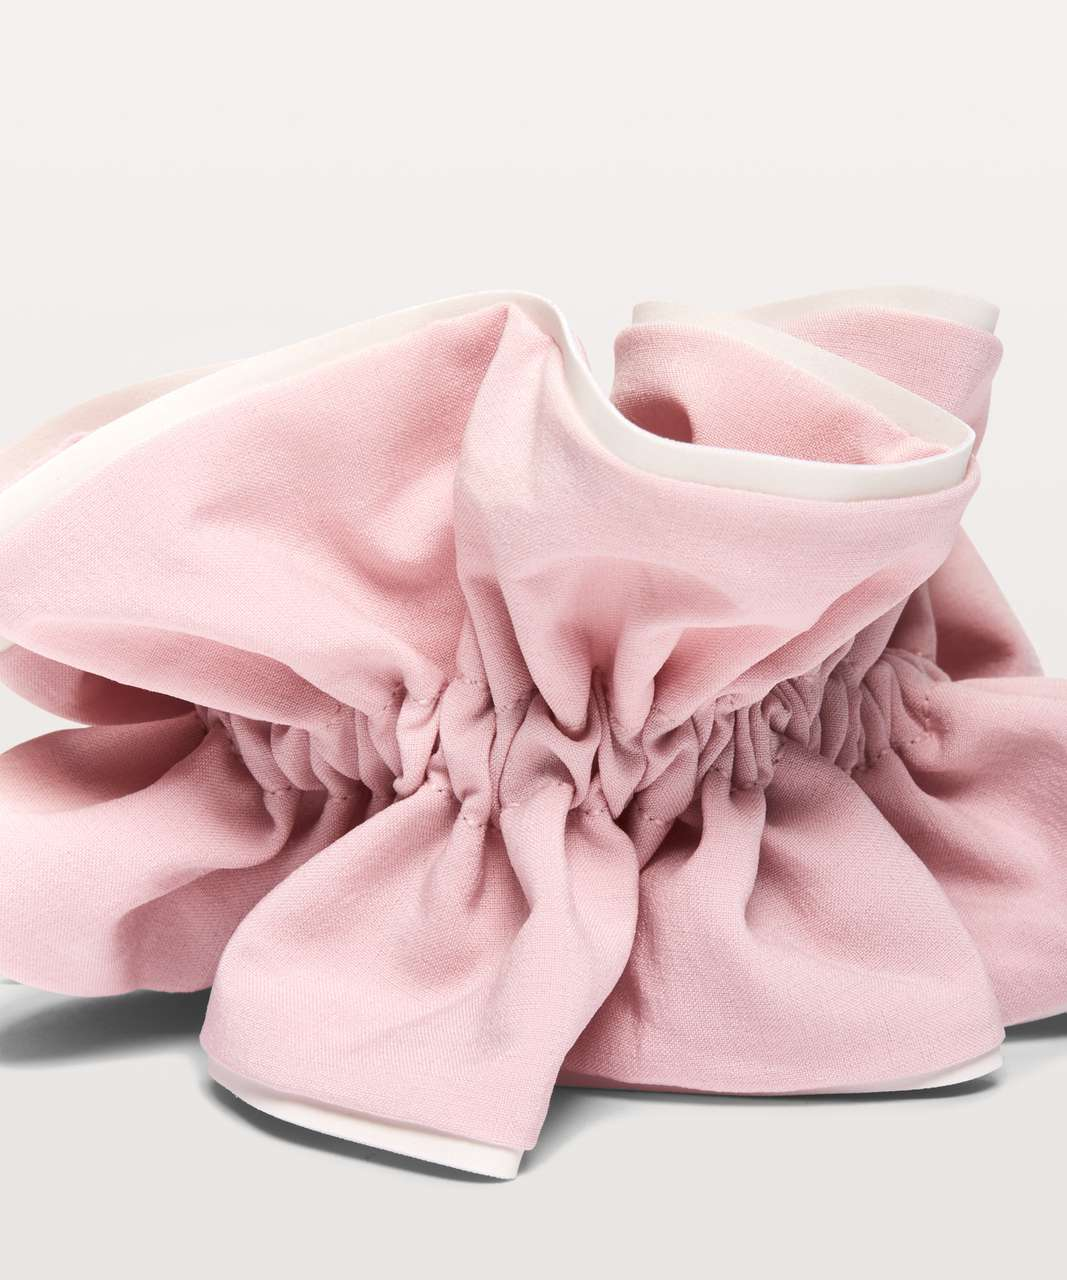 Lululemon Light Locks Scrunchie - Petals